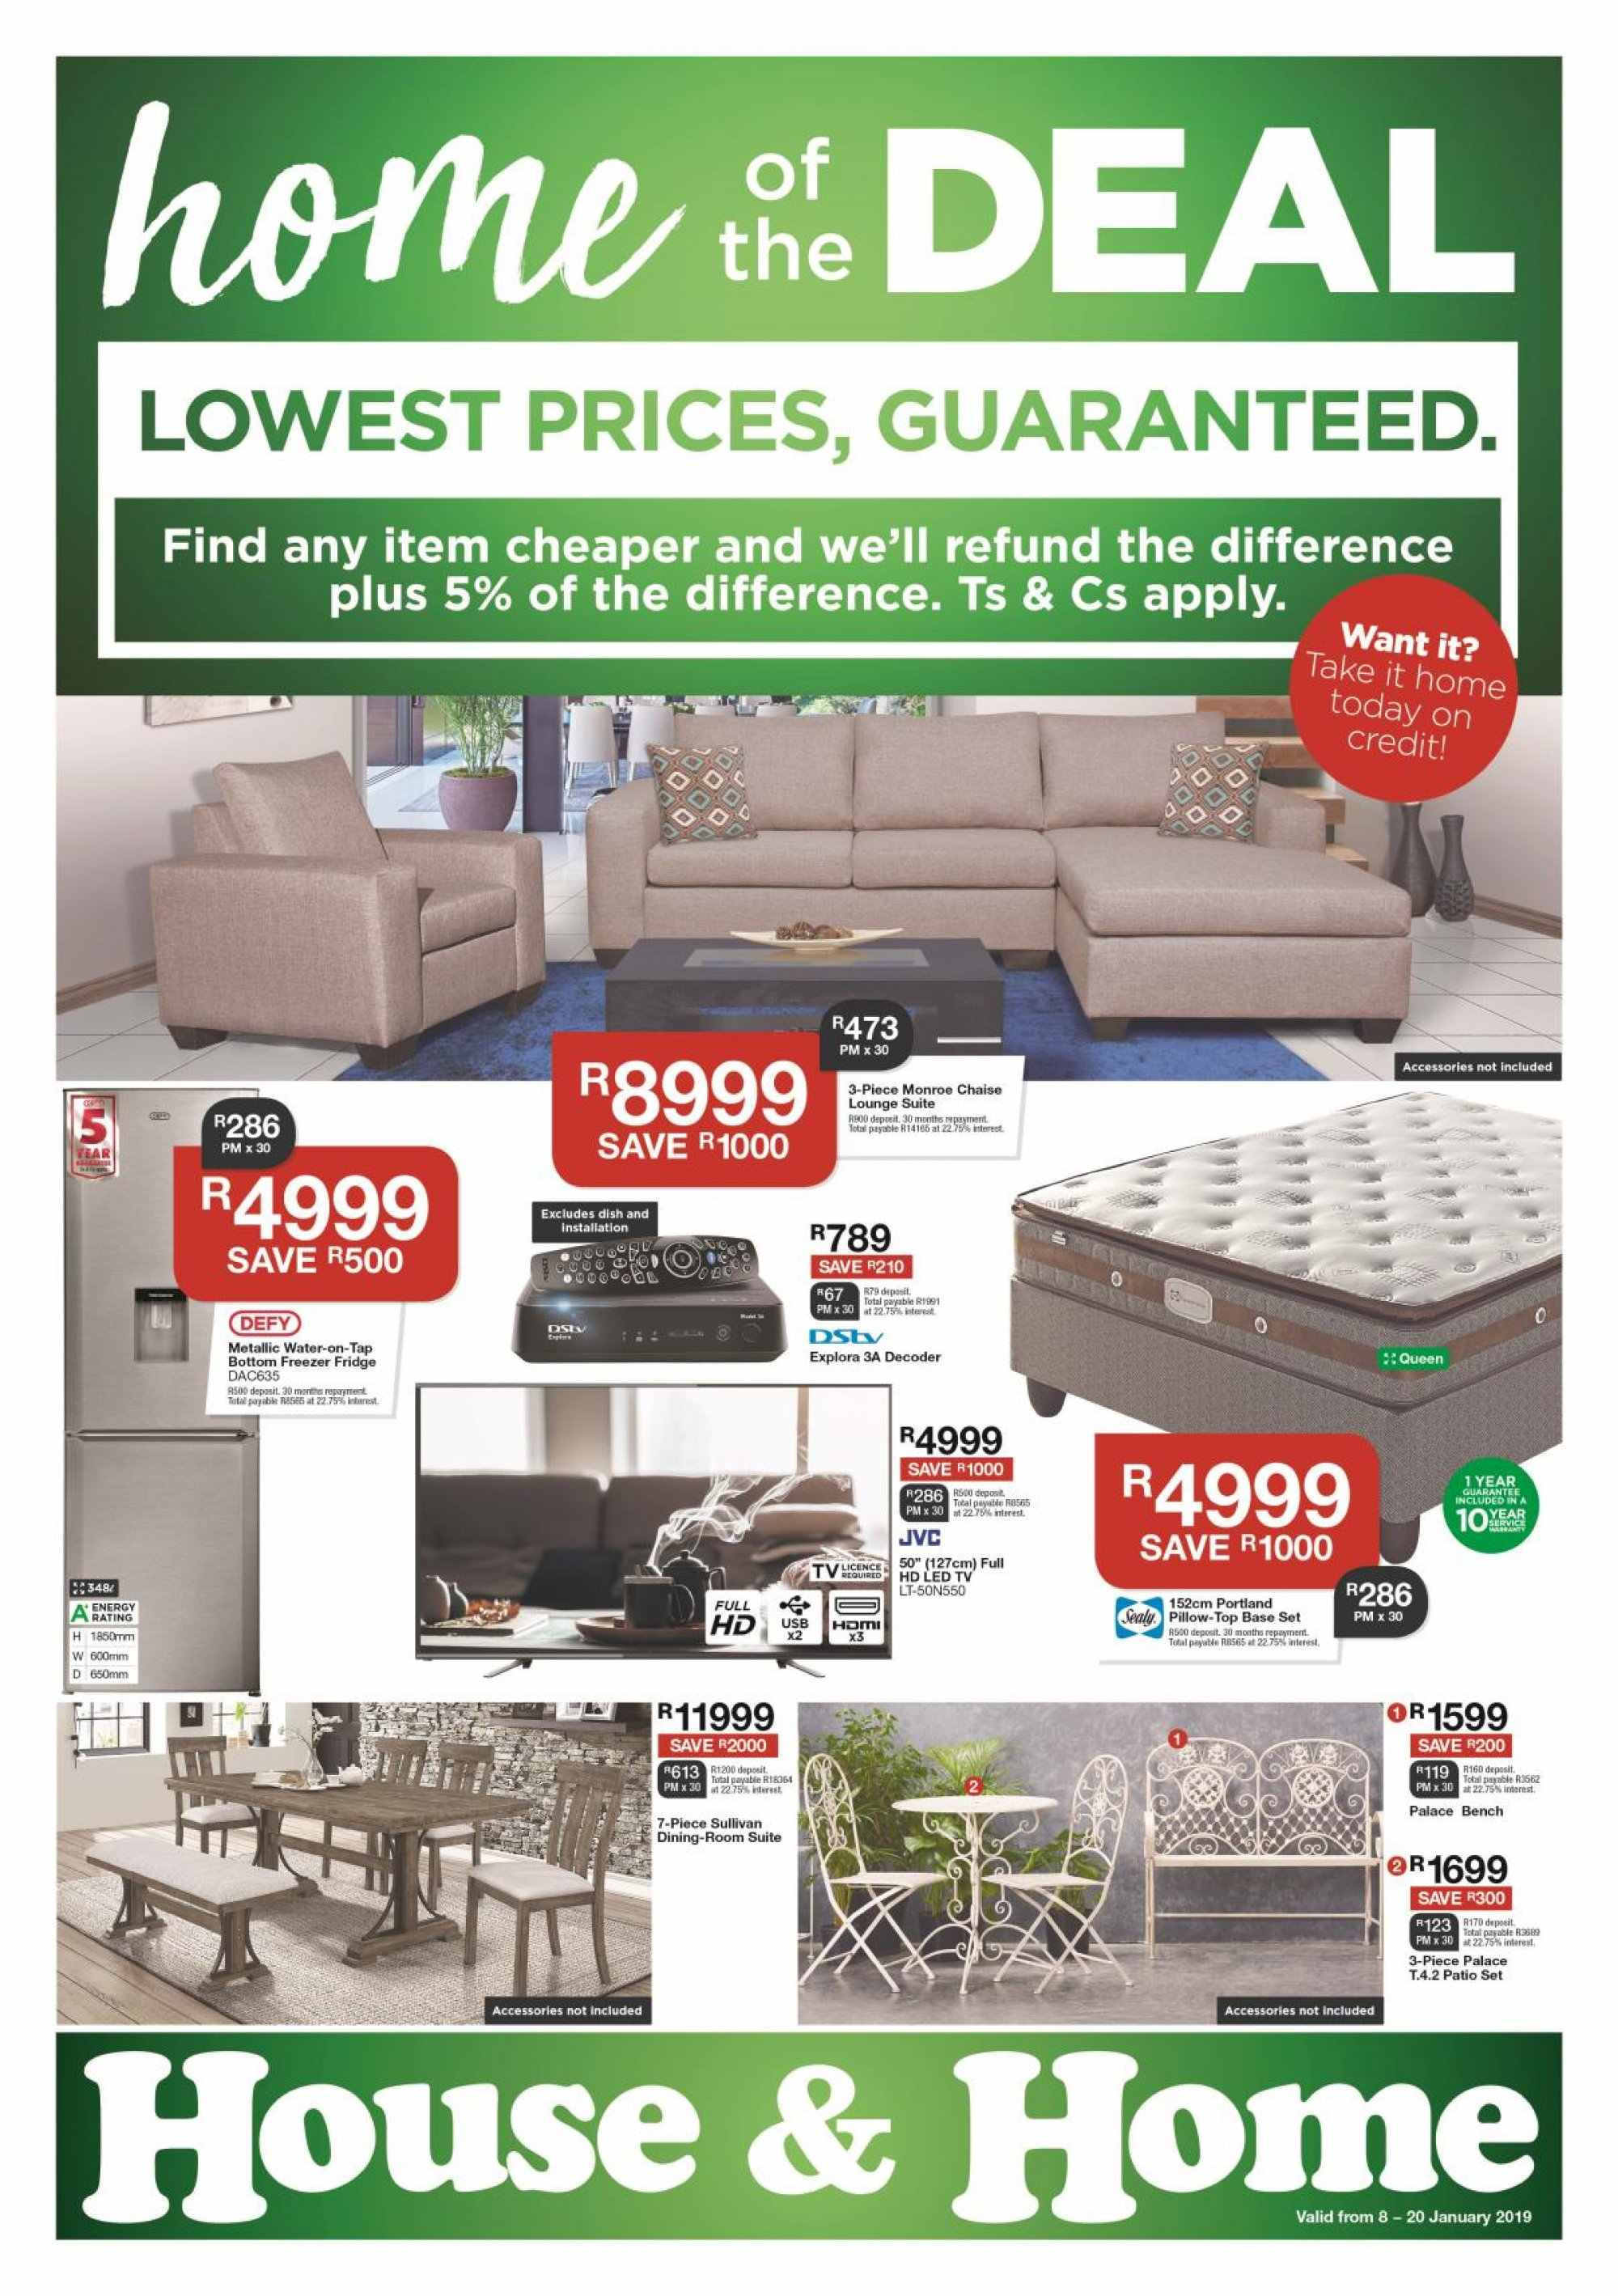 House & Home catalogue  - 01.08.2019 - 01.20.2019. Page 1.